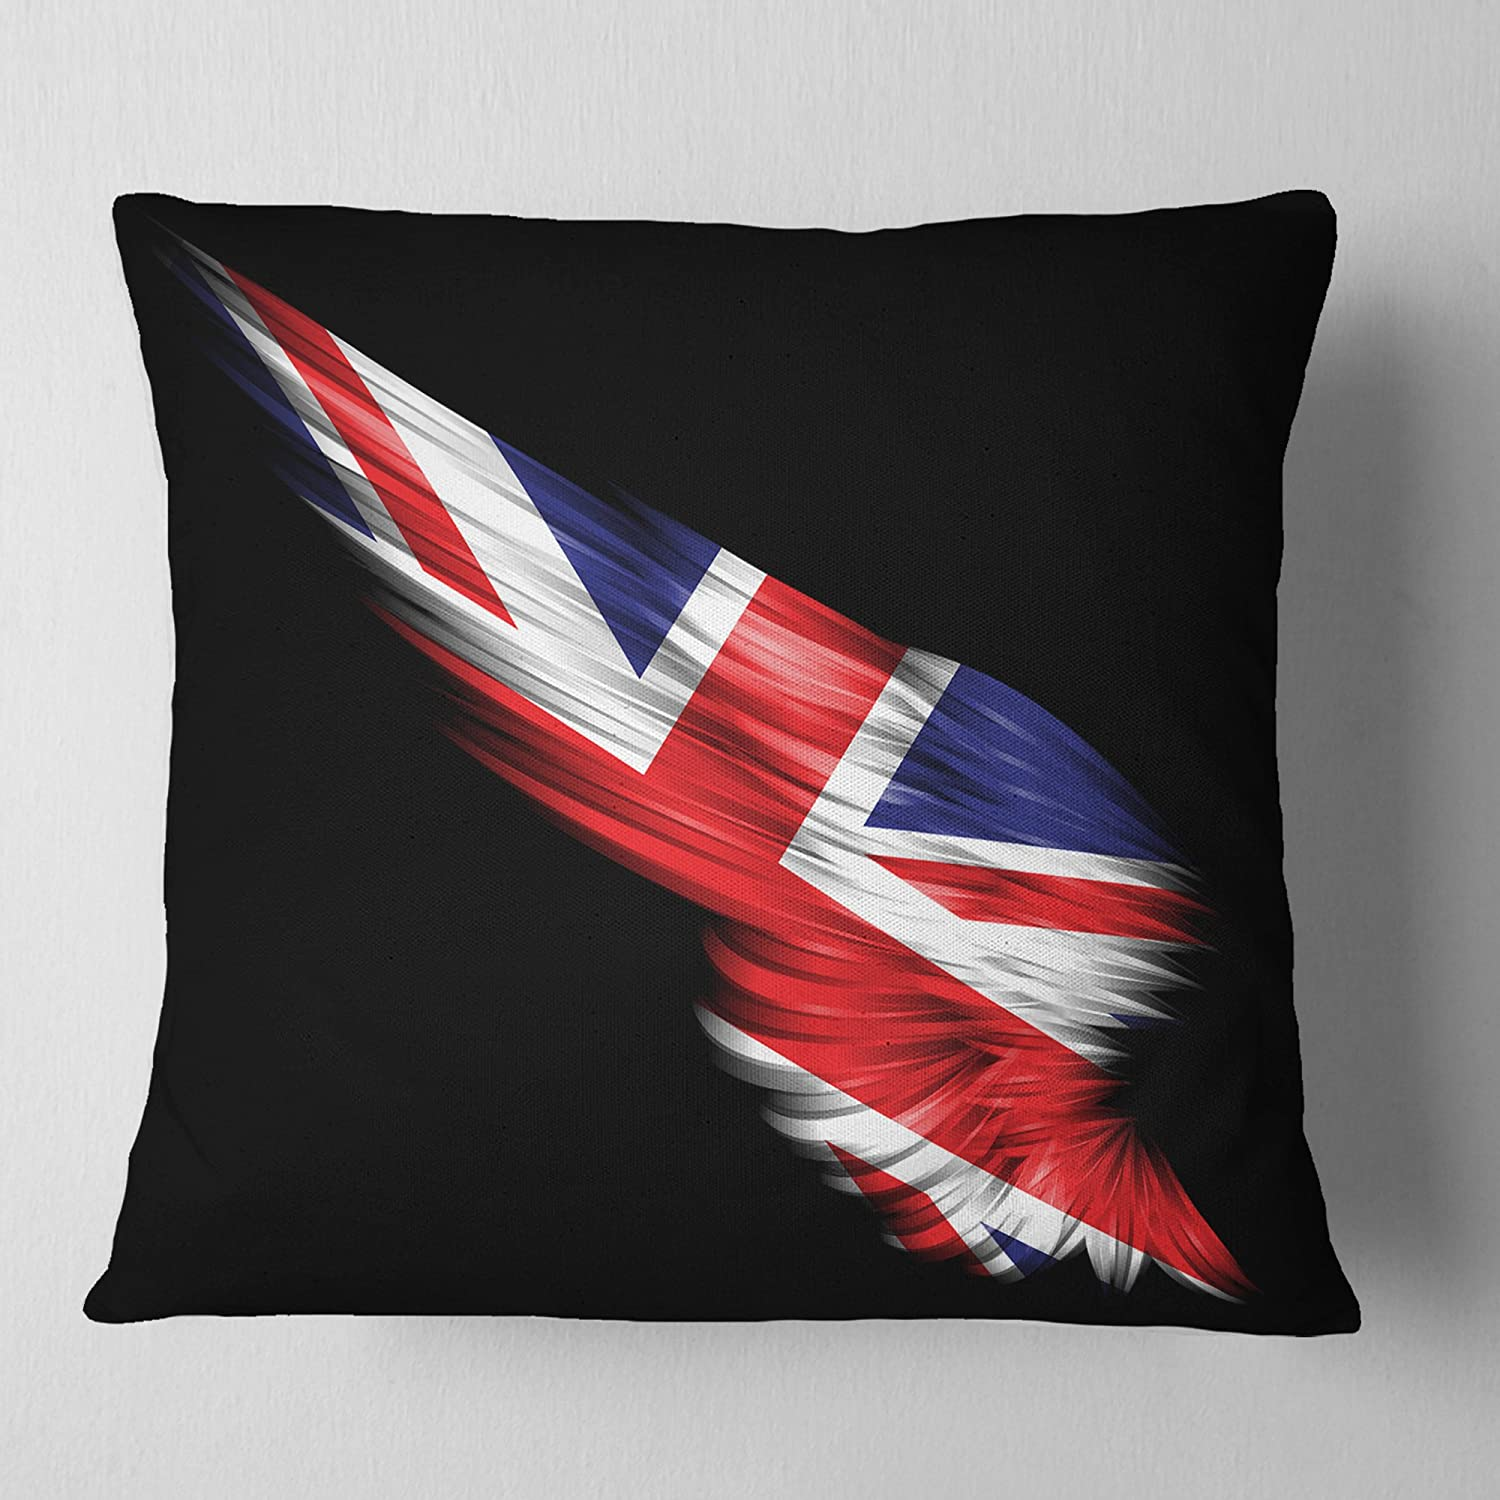 Designart CU8919-26-26 Wing with United Kingdom Flag Abstract Cushion Cover for Living Room 26 x 26 Sofa Throw Pillow